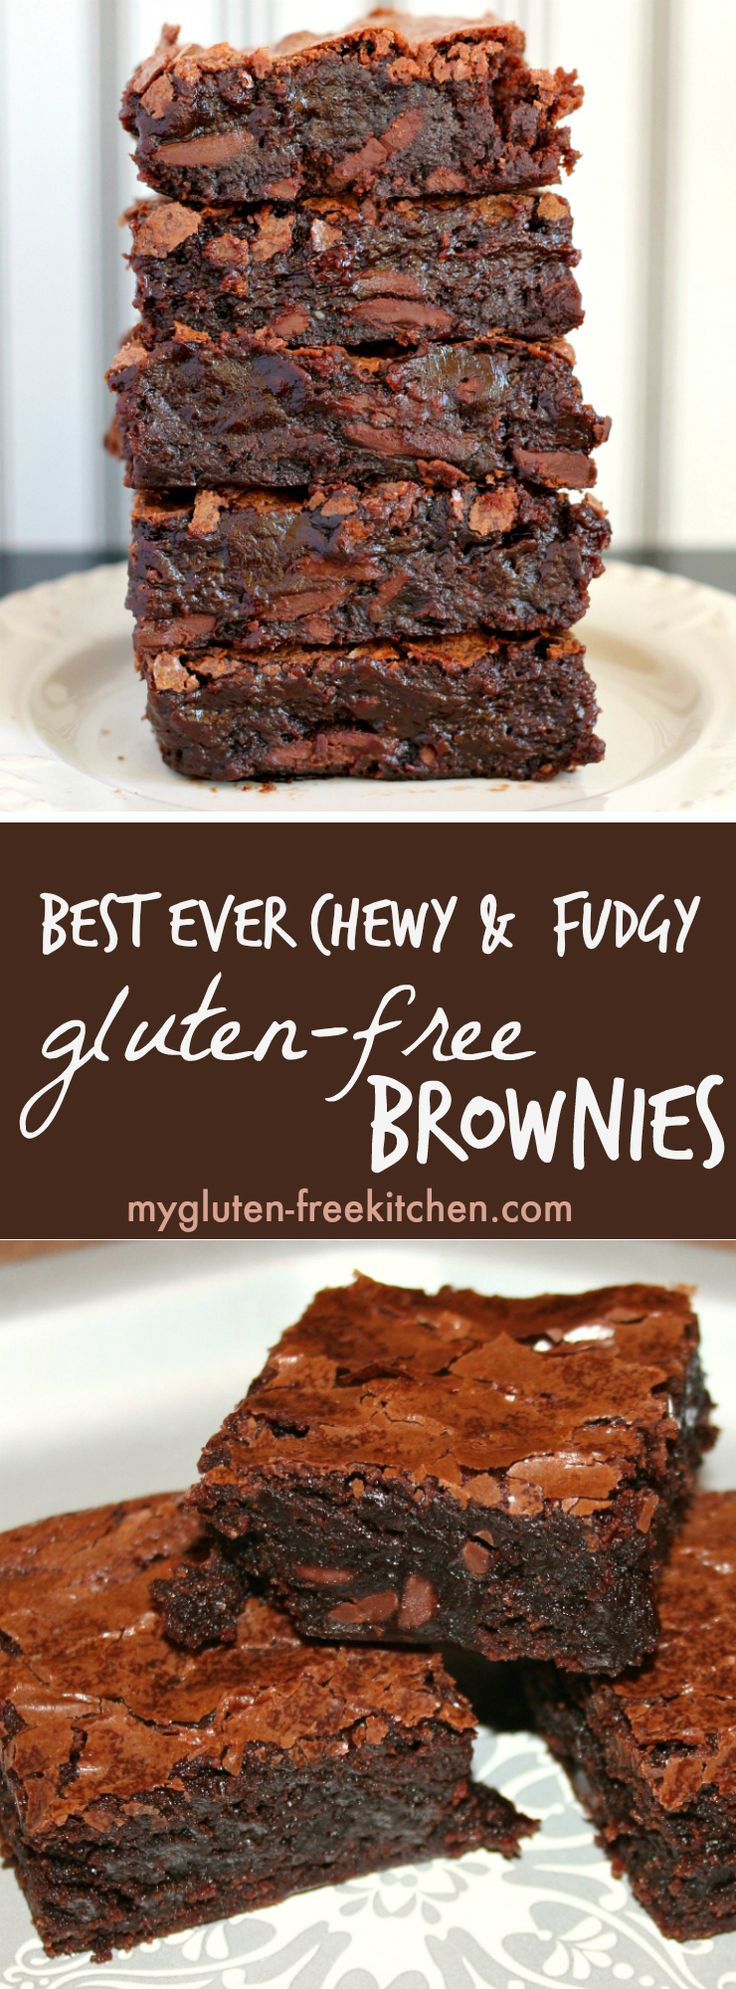 Best Ever Chewy & Fudgy Gluten-free Brownies Recipe. So easy to make too!(Paleo Recipes Easy)